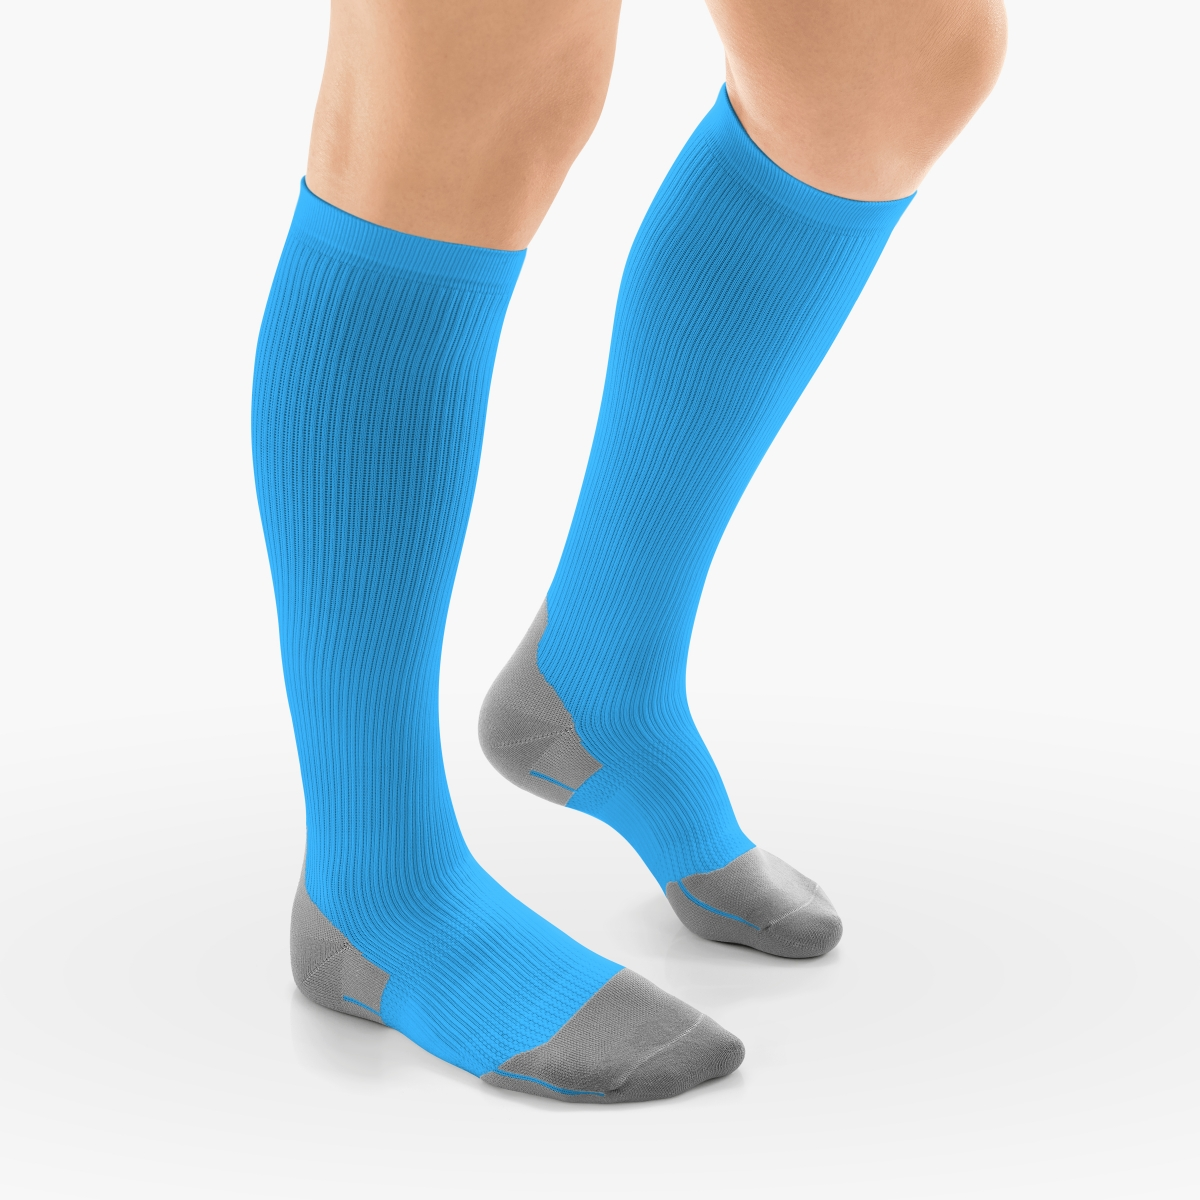 VENOSAN Athletic, Below Knee 20-30, Aqua, S, Closed Toe Firm 20-30 mmHg | Aqua | S |  | Closed Toe | Knit Top